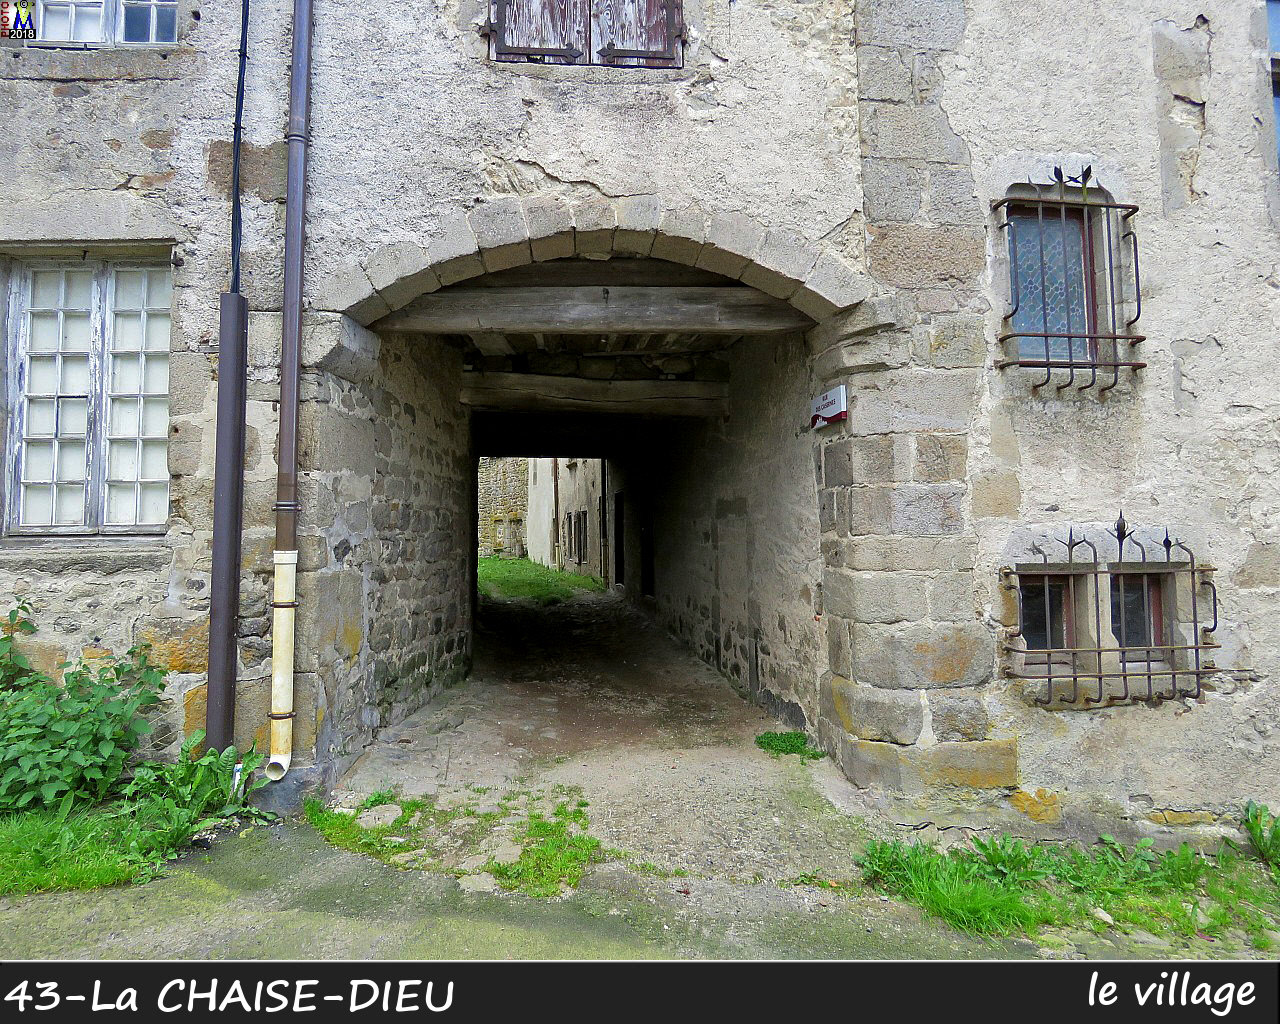 43CHAISE-DIEU_village_136.jpg